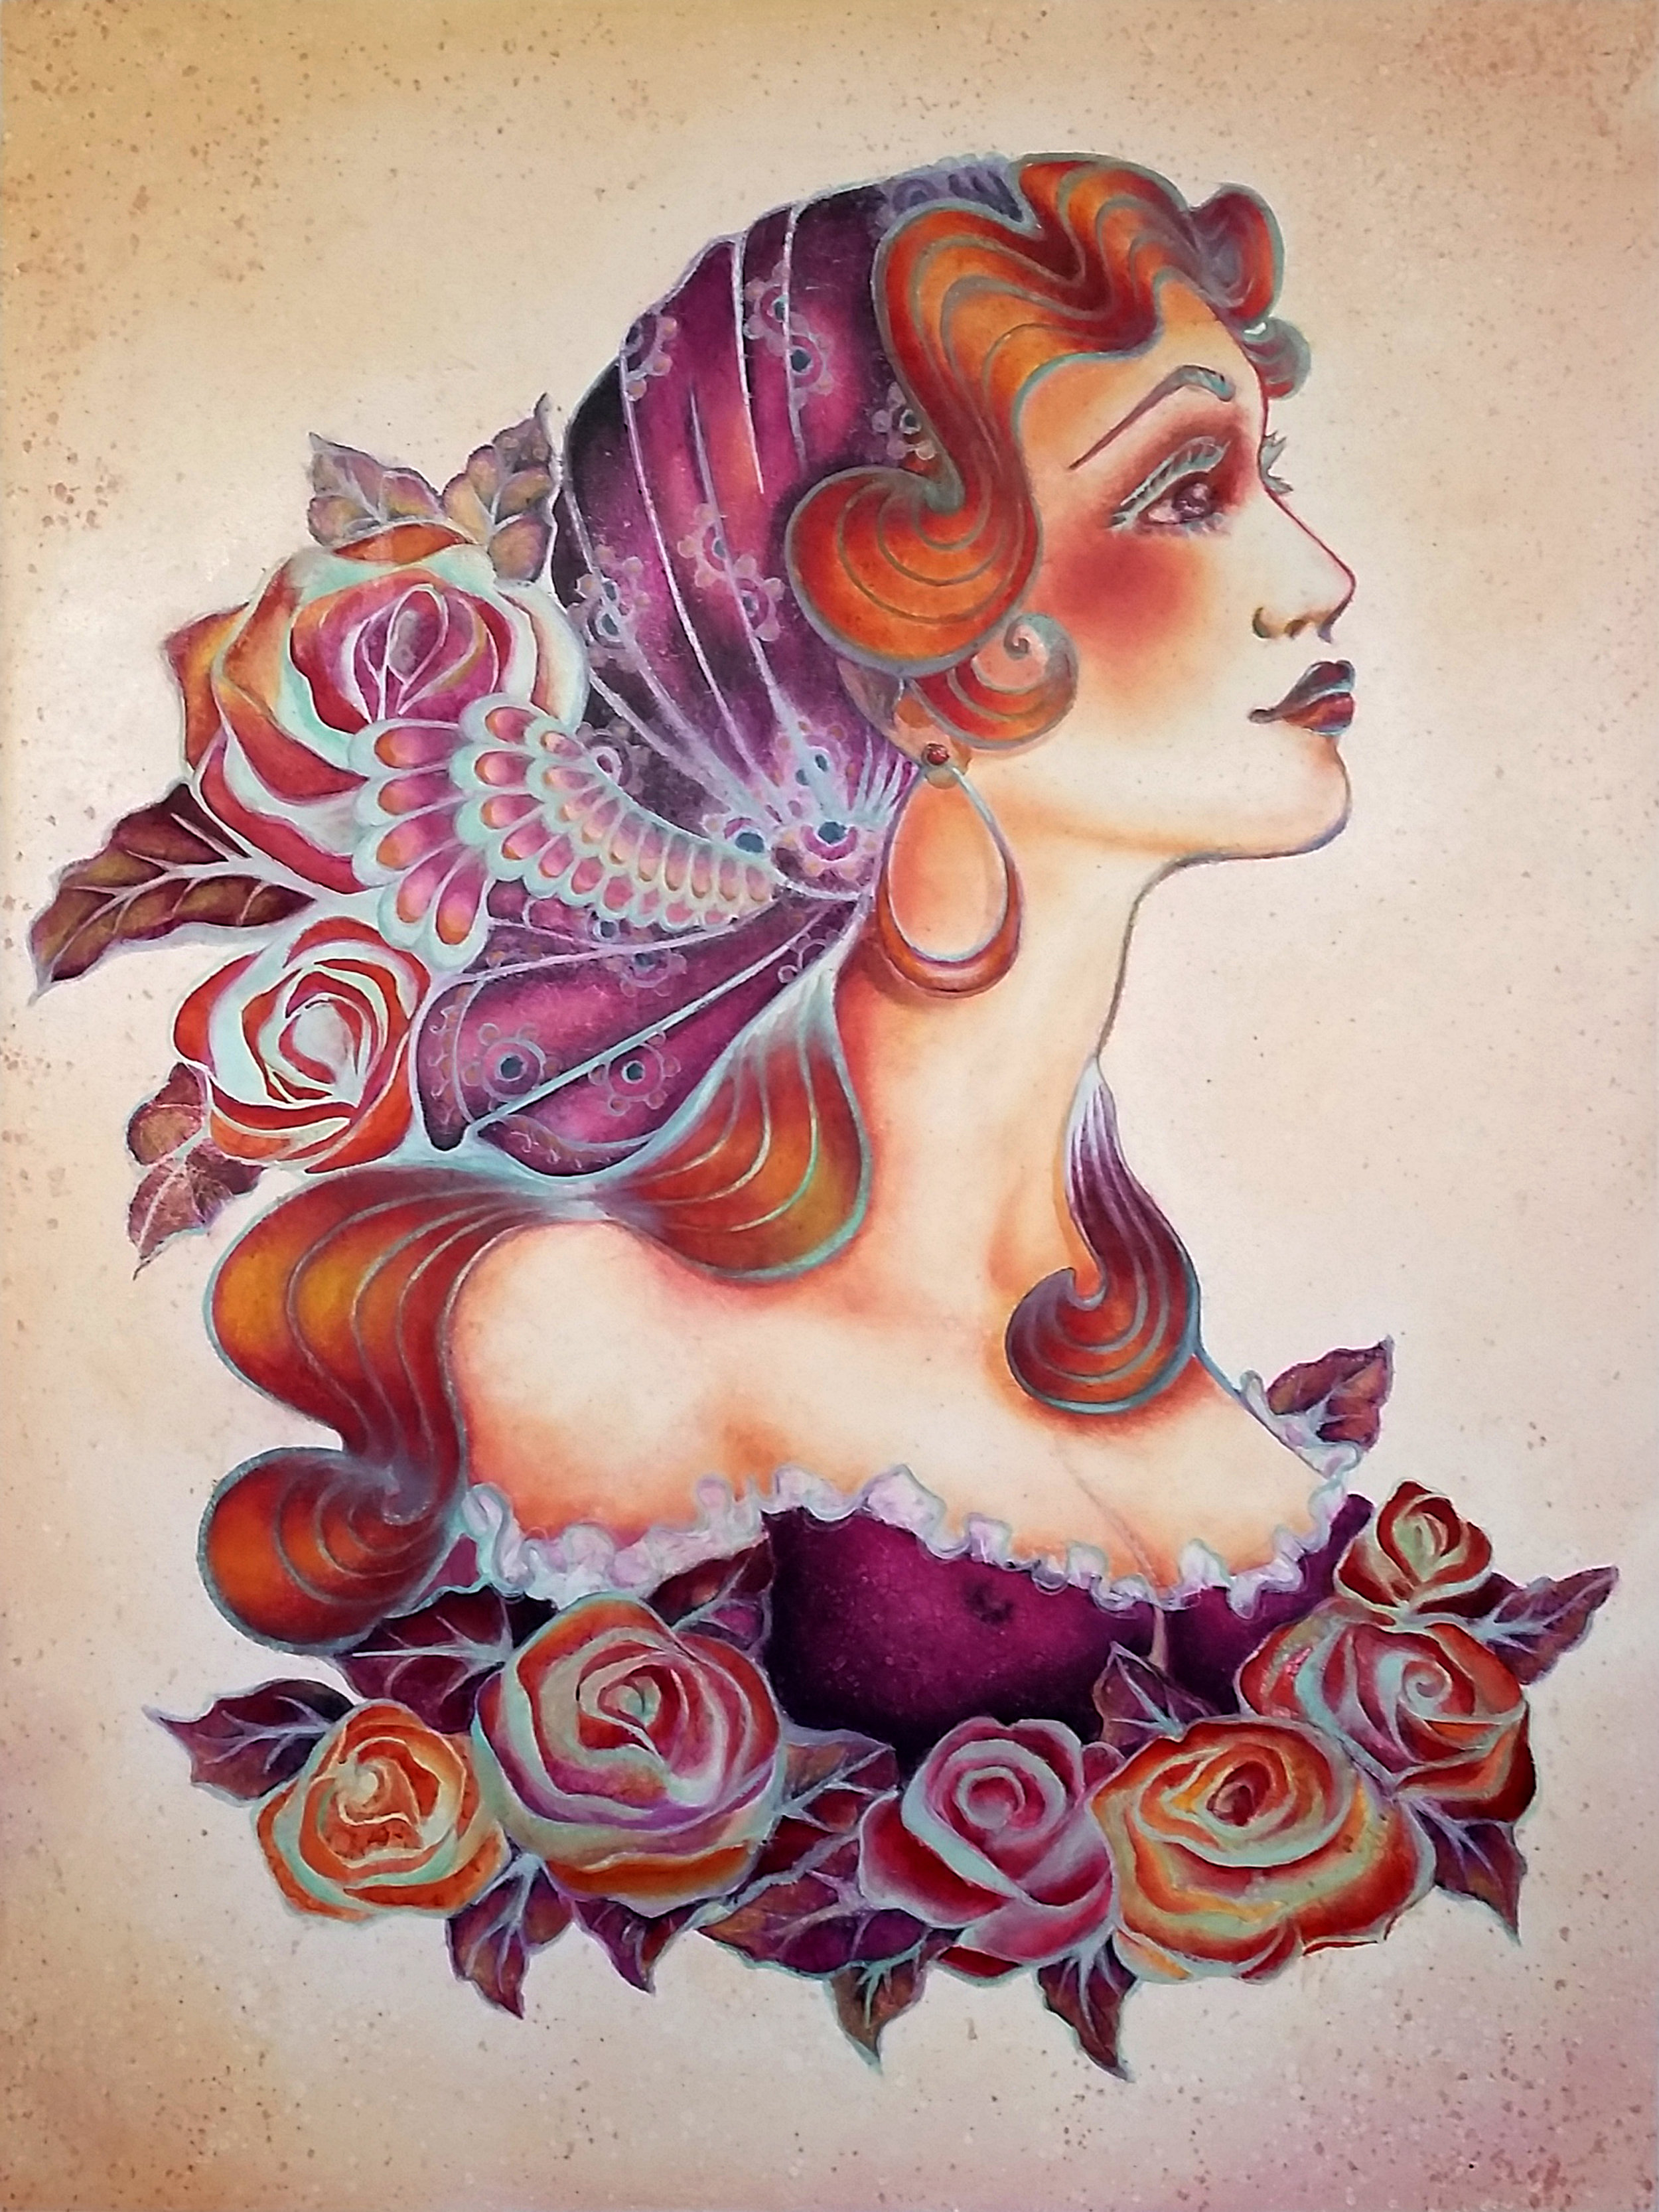 """""""Living Like a Gypsy"""", 2014, Ginger Del Rey  oil on gesso board 24"""" x 18"""" x 1""""  $1200  This painting is inspired by my love of classic, Sailor Jerry style tattoo imagery combined with the ornamentation of Alphonse Mucha, another artist I adore. Instead of the typical heavy black line work, I decided to reverse it by painting most of the lines in pale mint. I think it gives the piece a lush feminine quality."""